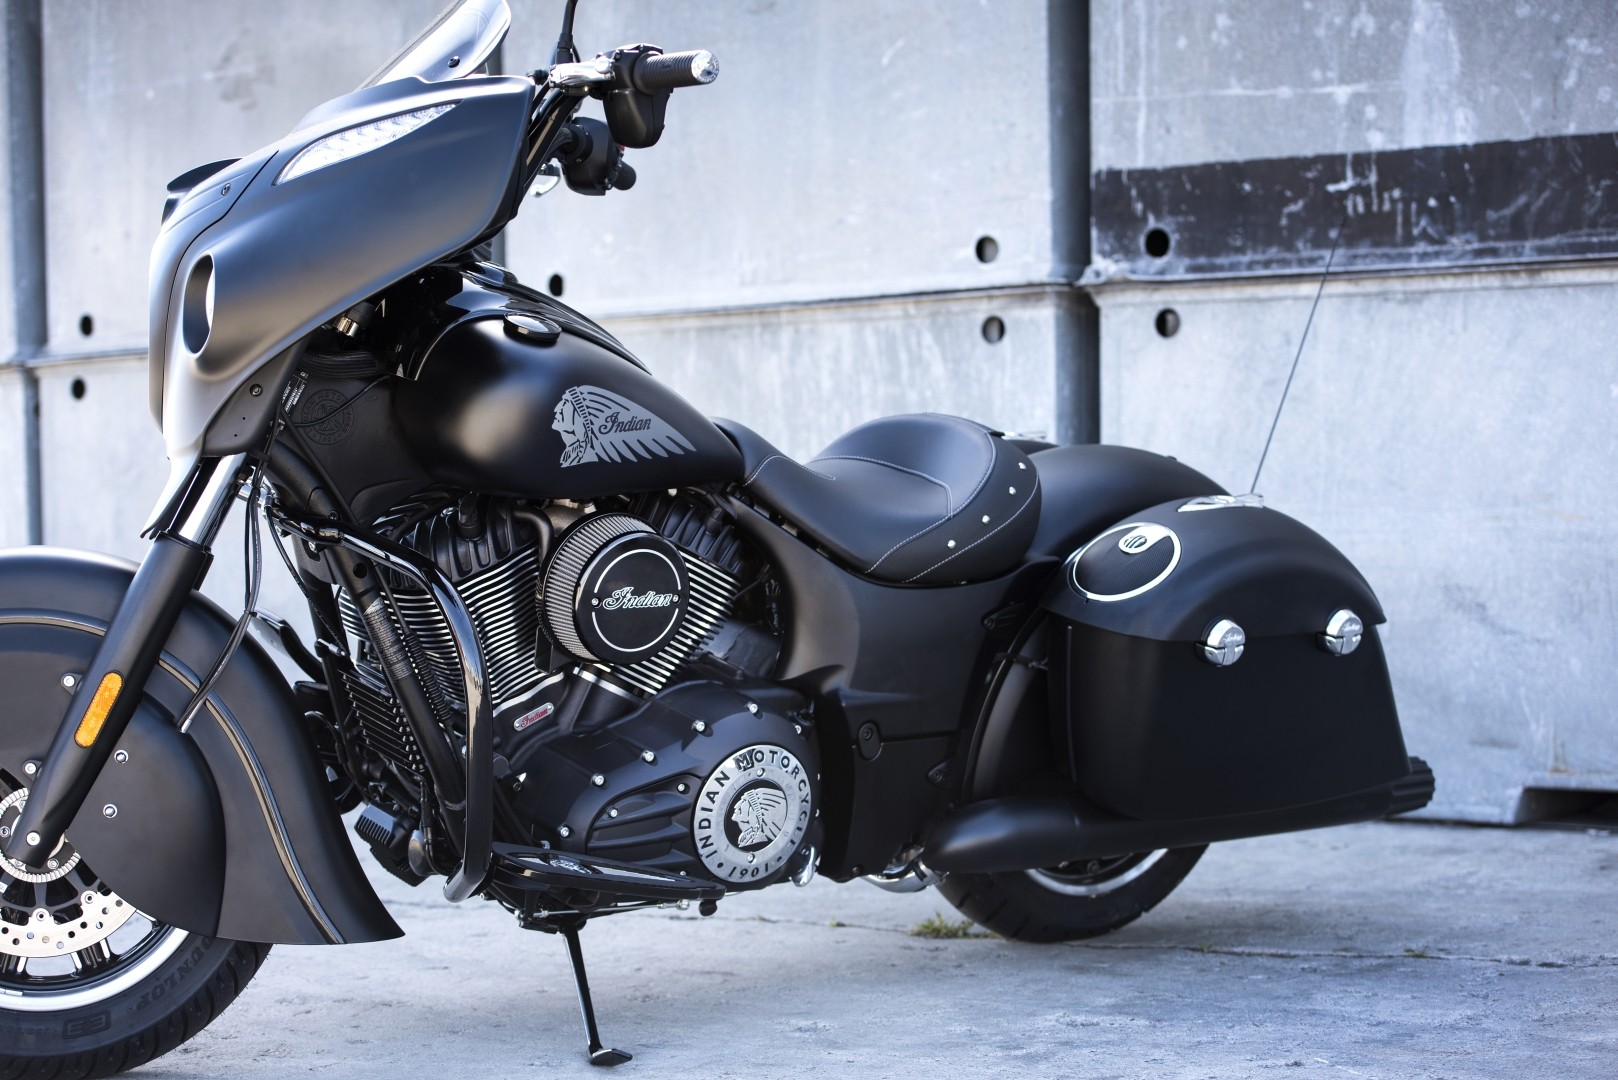 2016 indian chieftain dark horse is a neat bagger could have been darker autoevolution. Black Bedroom Furniture Sets. Home Design Ideas